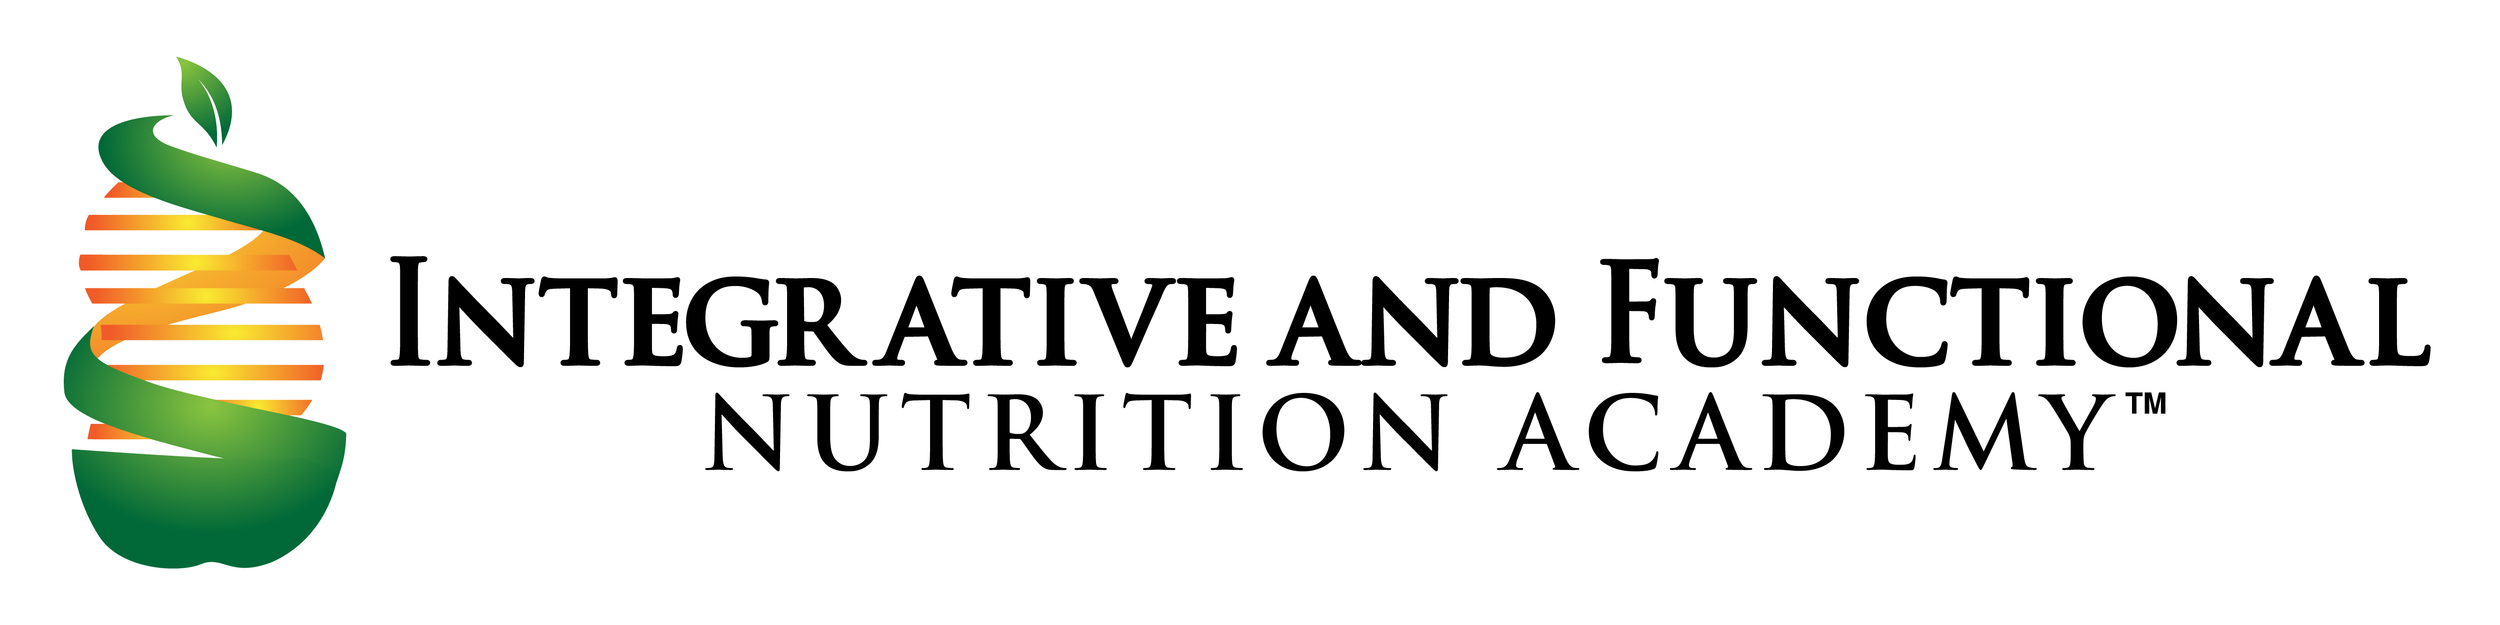 """Become an Integrative and Functional Nutrition Certified Practitioner™ (IFNCP™)!                       Normal   0           false   false   false     EN-US   JA   X-NONE                                                                                                                                                                                                                                                                                                                                                                              /* Style Definitions */ table.MsoNormalTable {mso-style-name:""""Table Normal""""; mso-tstyle-rowband-size:0; mso-tstyle-colband-size:0; mso-style-noshow:yes; mso-style-priority:99; mso-style-parent:""""""""; mso-padding-alt:0in 5.4pt 0in 5.4pt; mso-para-margin:0in; mso-para-margin-bottom:.0001pt; mso-pagination:widow-orphan; font-size:12.0pt; font-family:Cambria; mso-ascii-font-family:Cambria; mso-ascii-theme-font:minor-latin; mso-hansi-font-family:Cambria; mso-hansi-theme-font:minor-latin;}"""